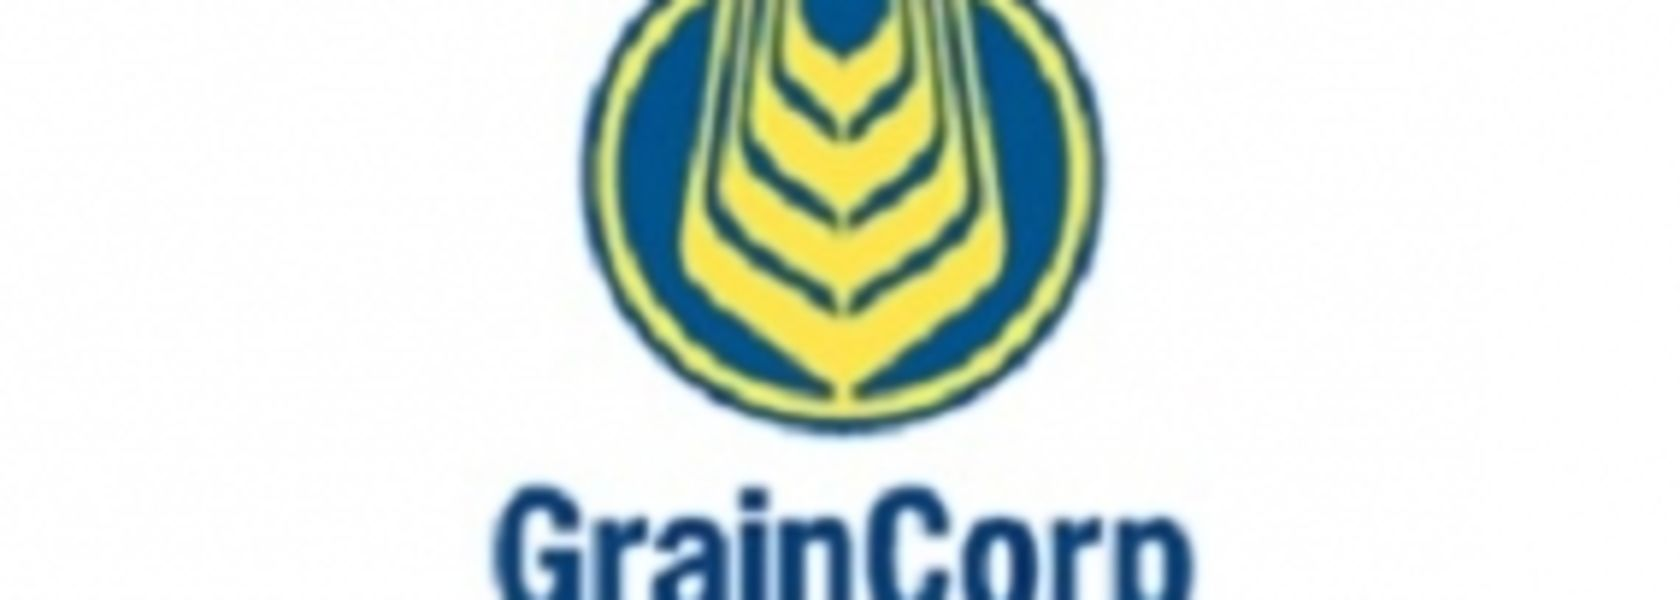 Graincorp lands new chief